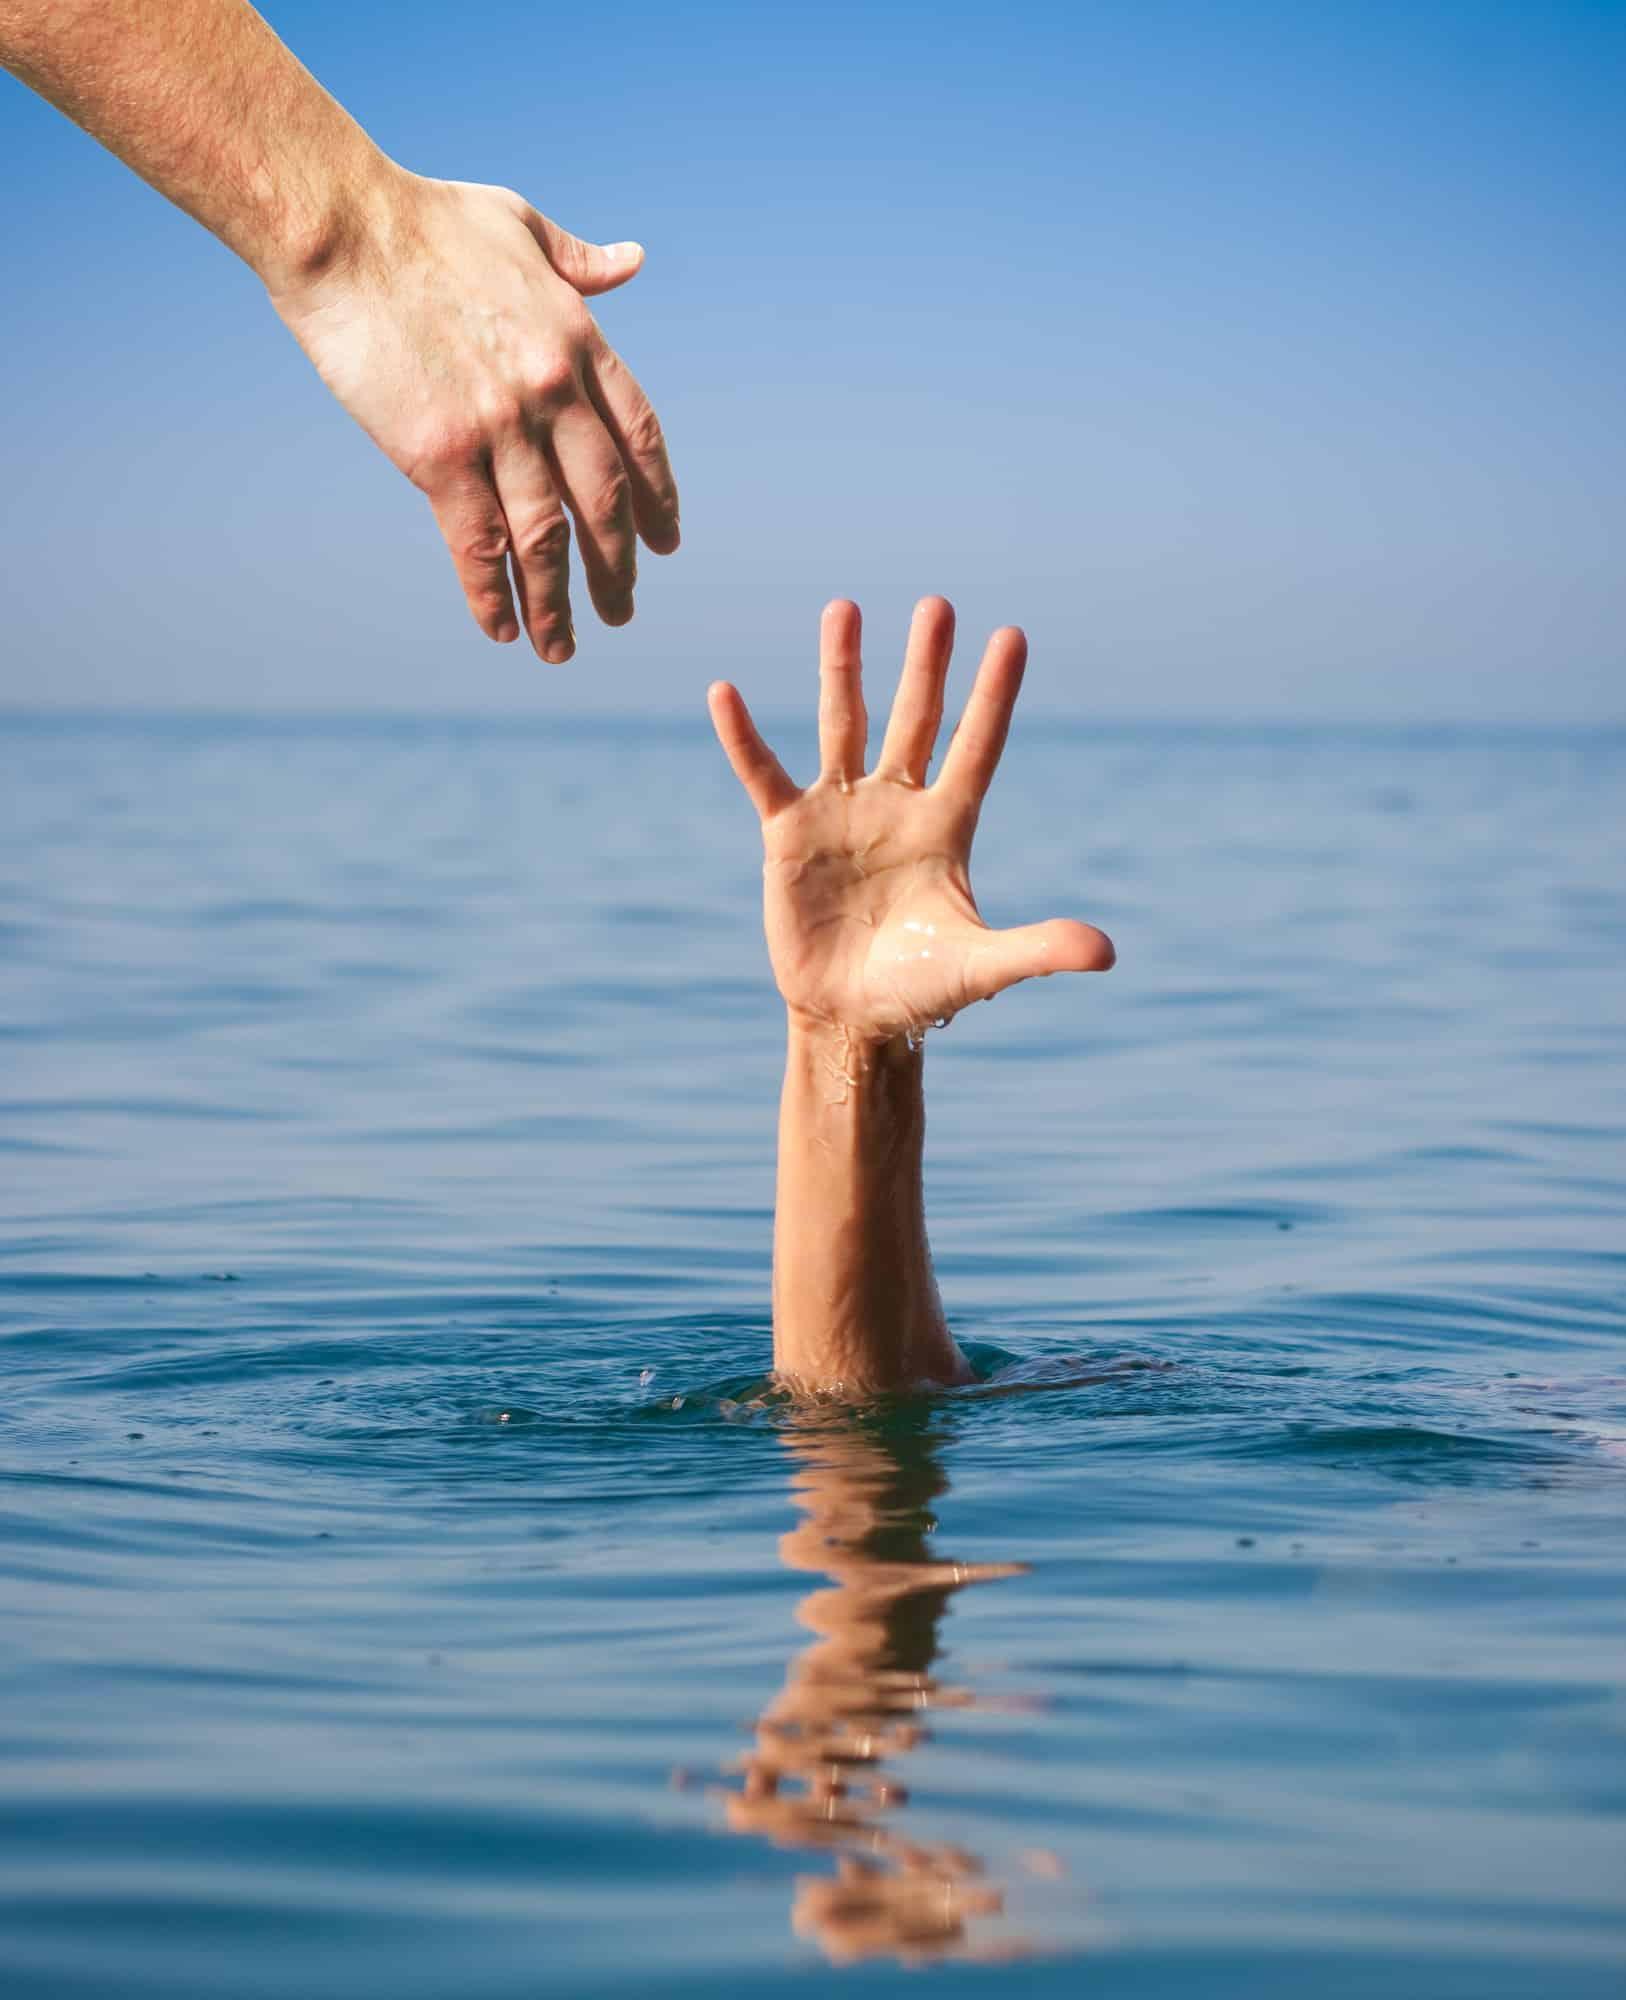 helping hand giving to drowning man in sea